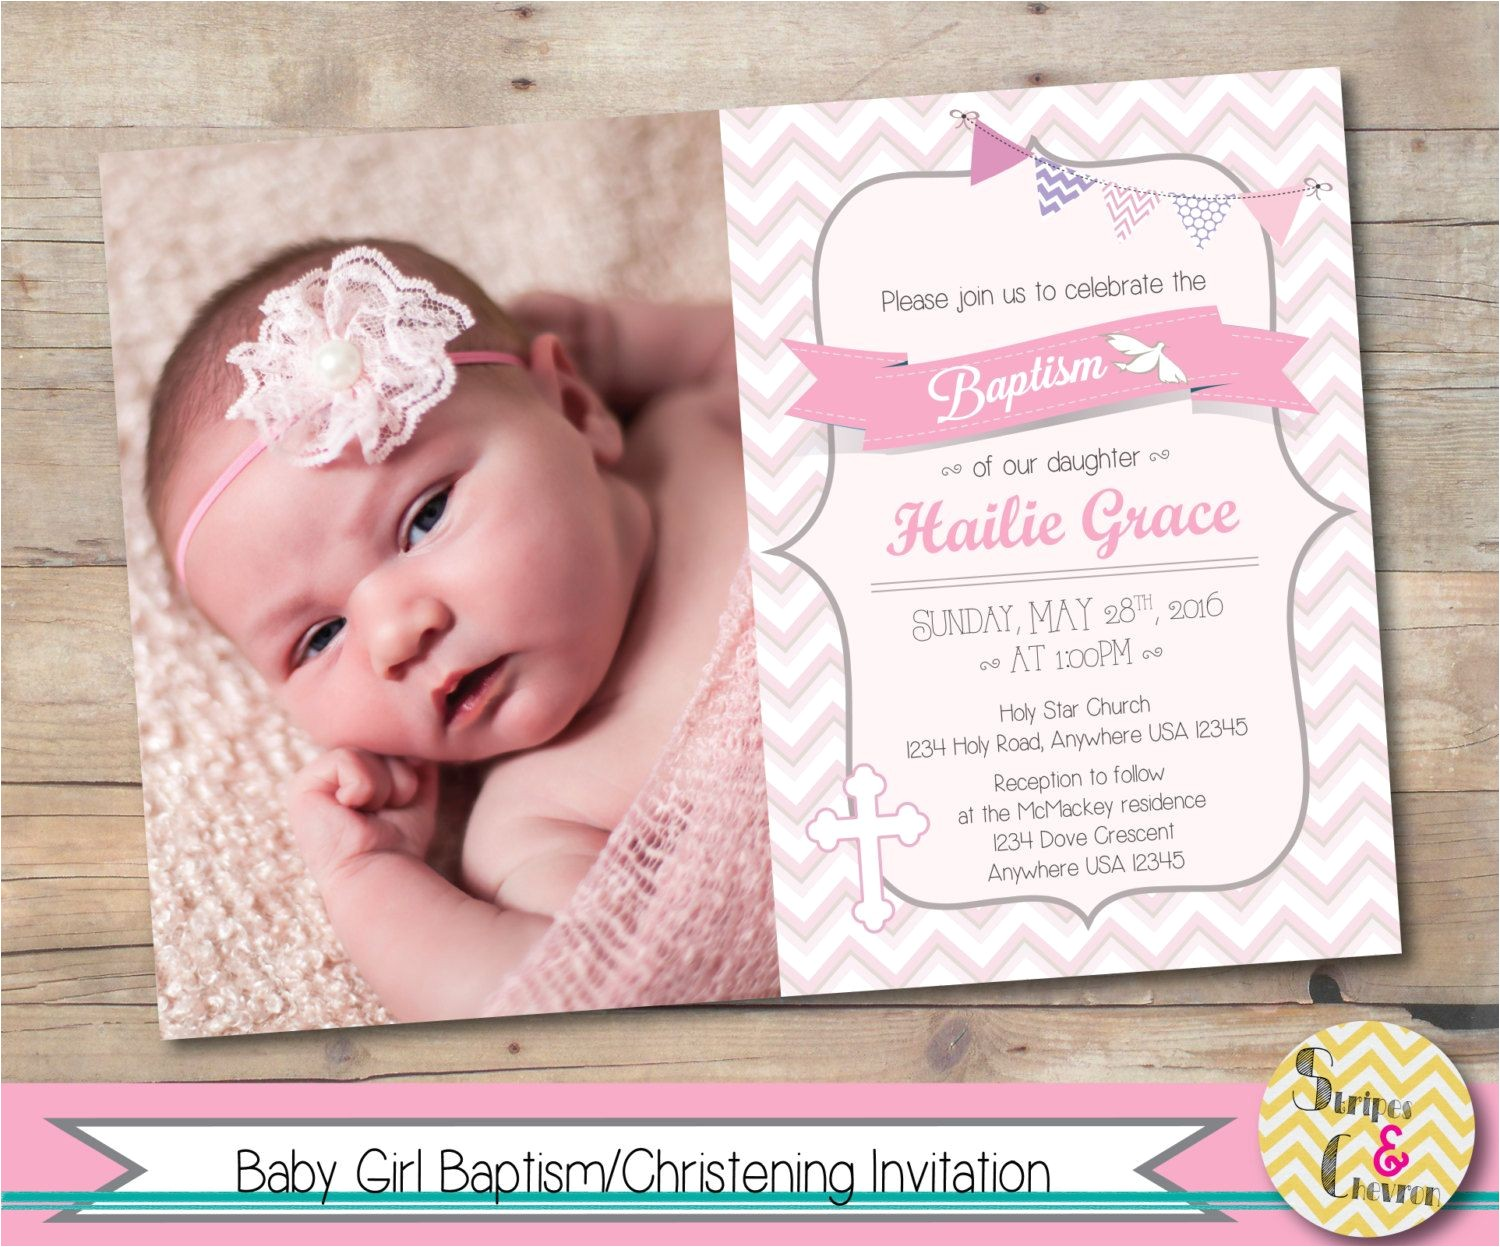 Unique Baptismal Invitation for Baby Girl Girl Baptism Invitation Christening Invite Personalized